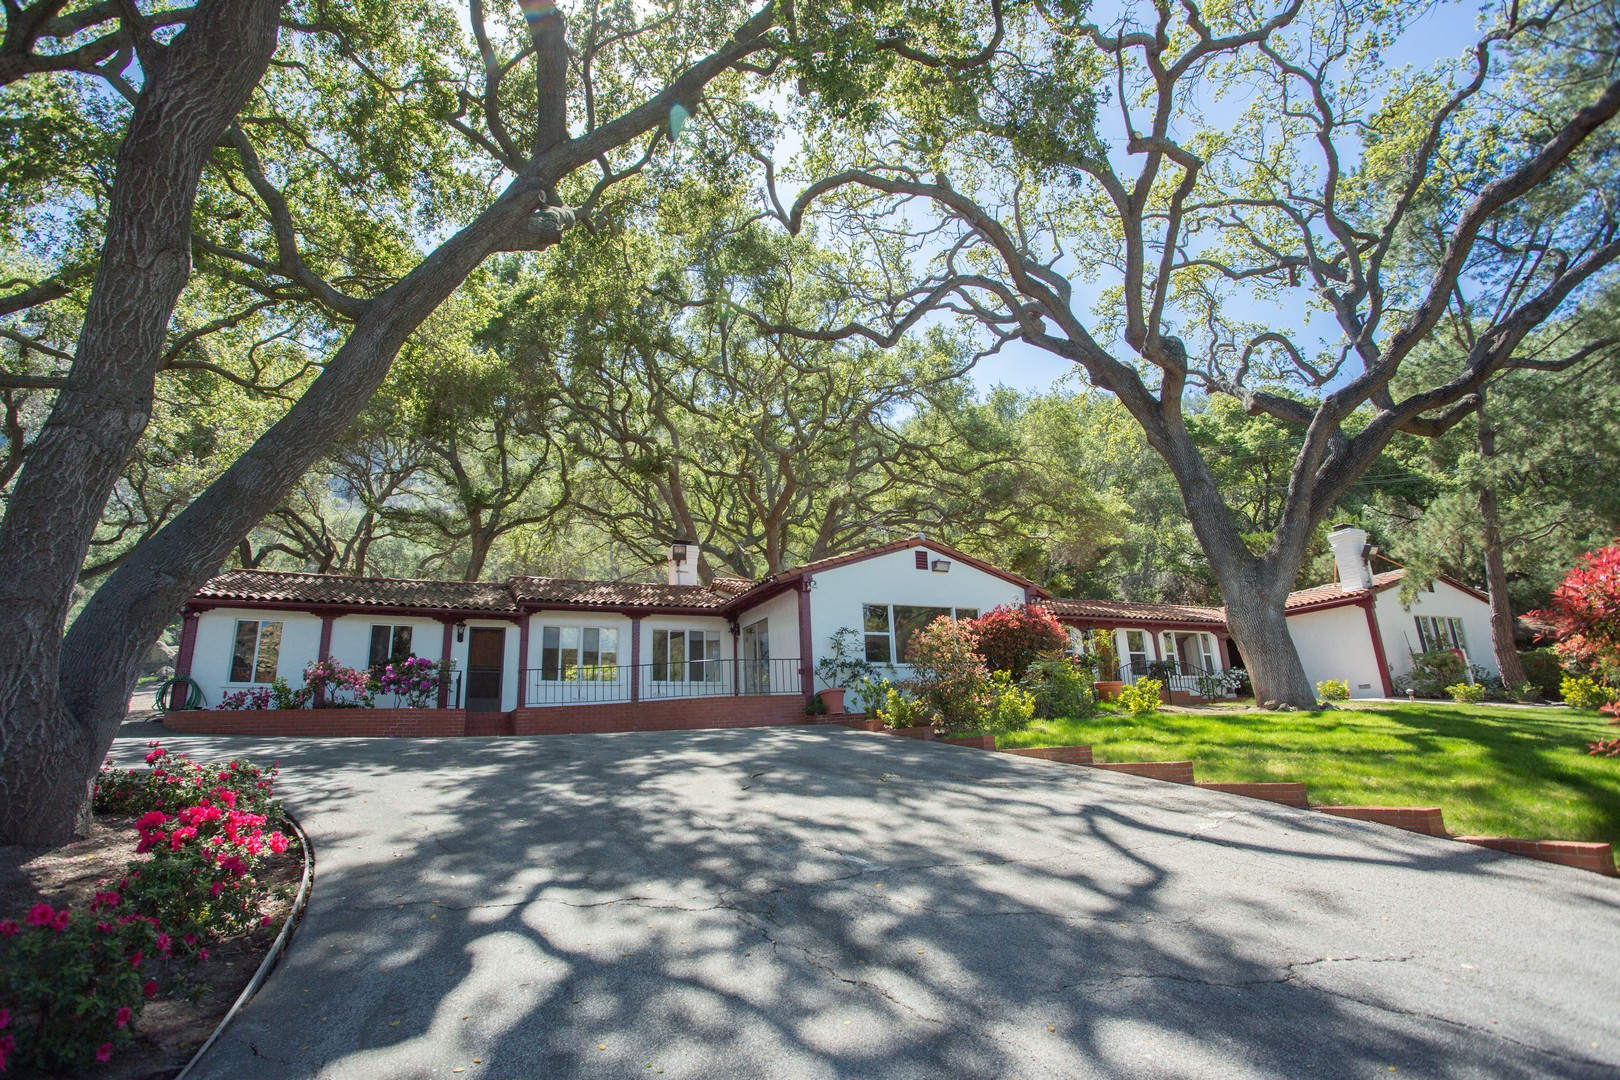 Single Family Home for Sale at Hidden Valley Road 1688 Hidden Valley Road Thousand Oaks, California 91361 United States